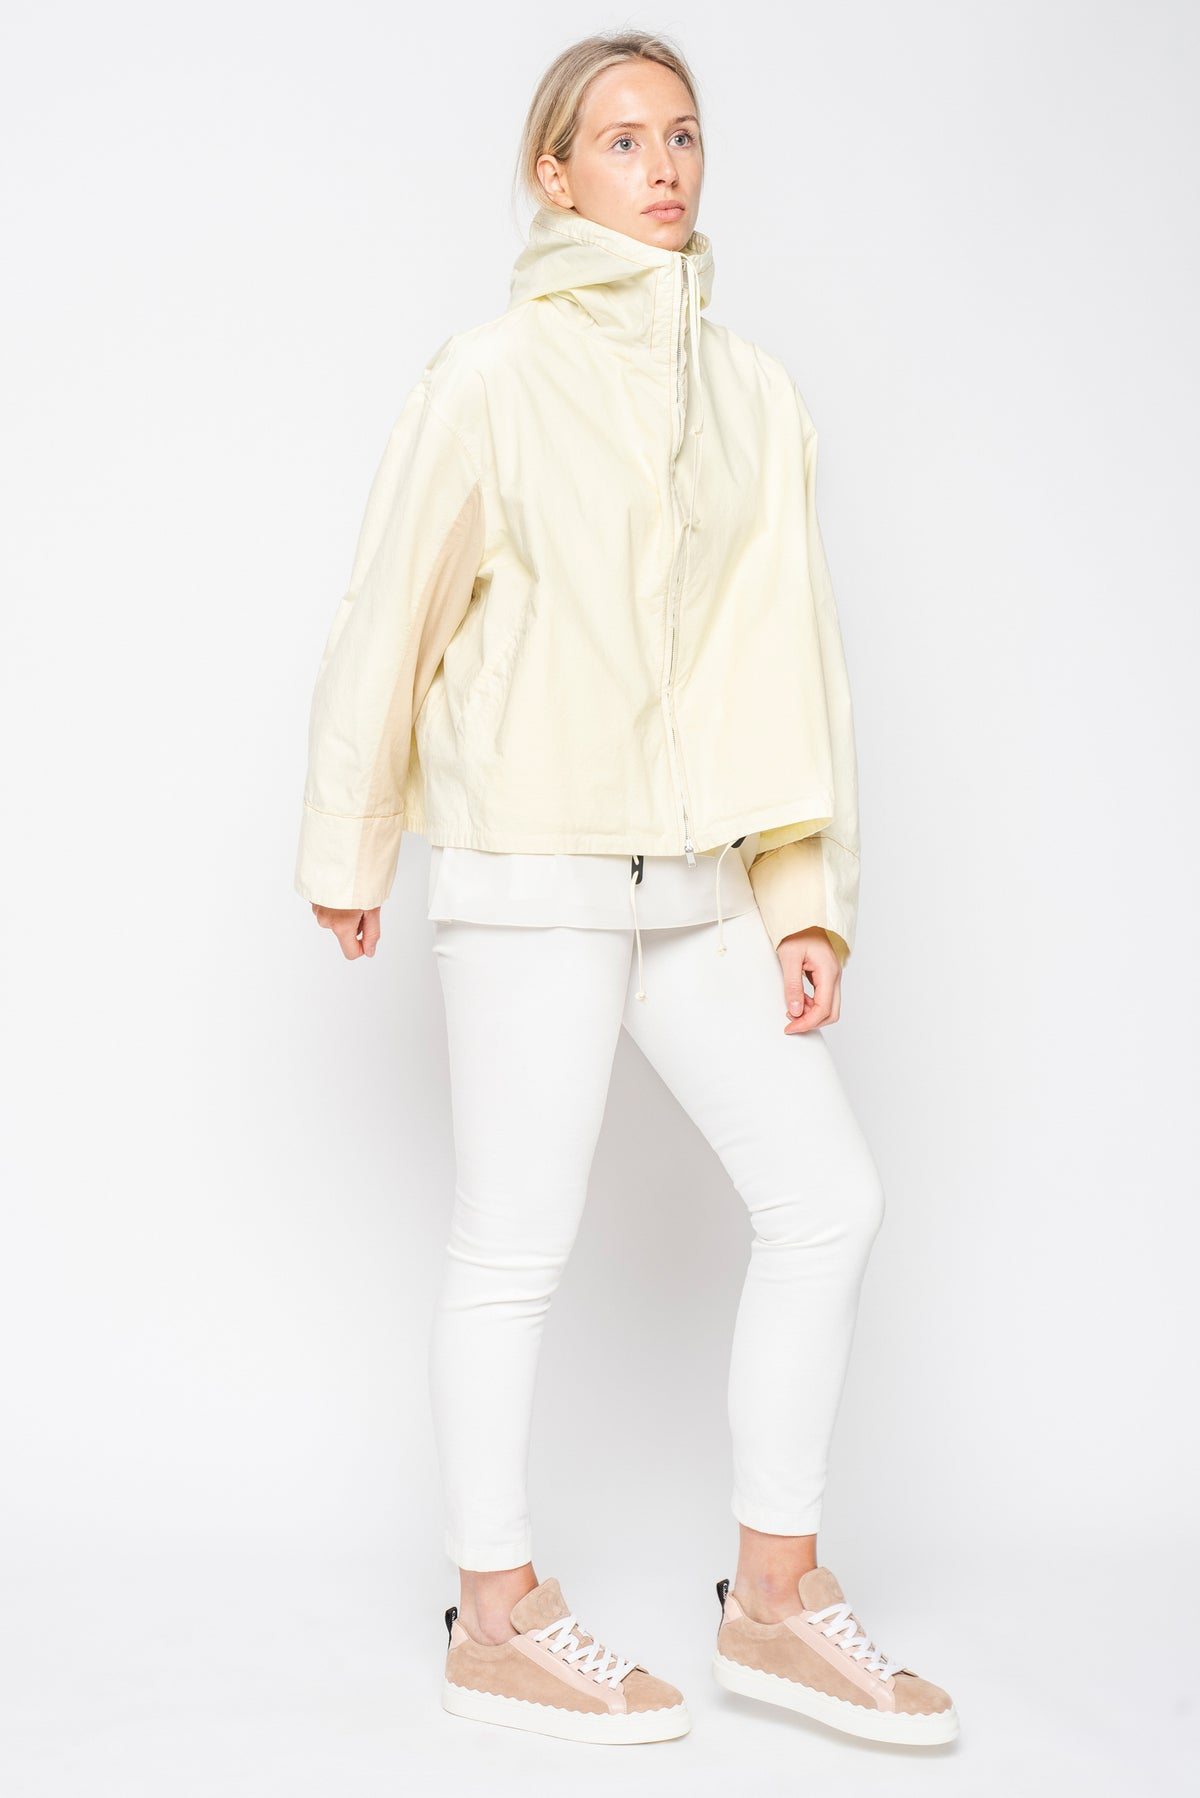 Jil Sander Lemon Cotton Swing Jacket with Beige Back